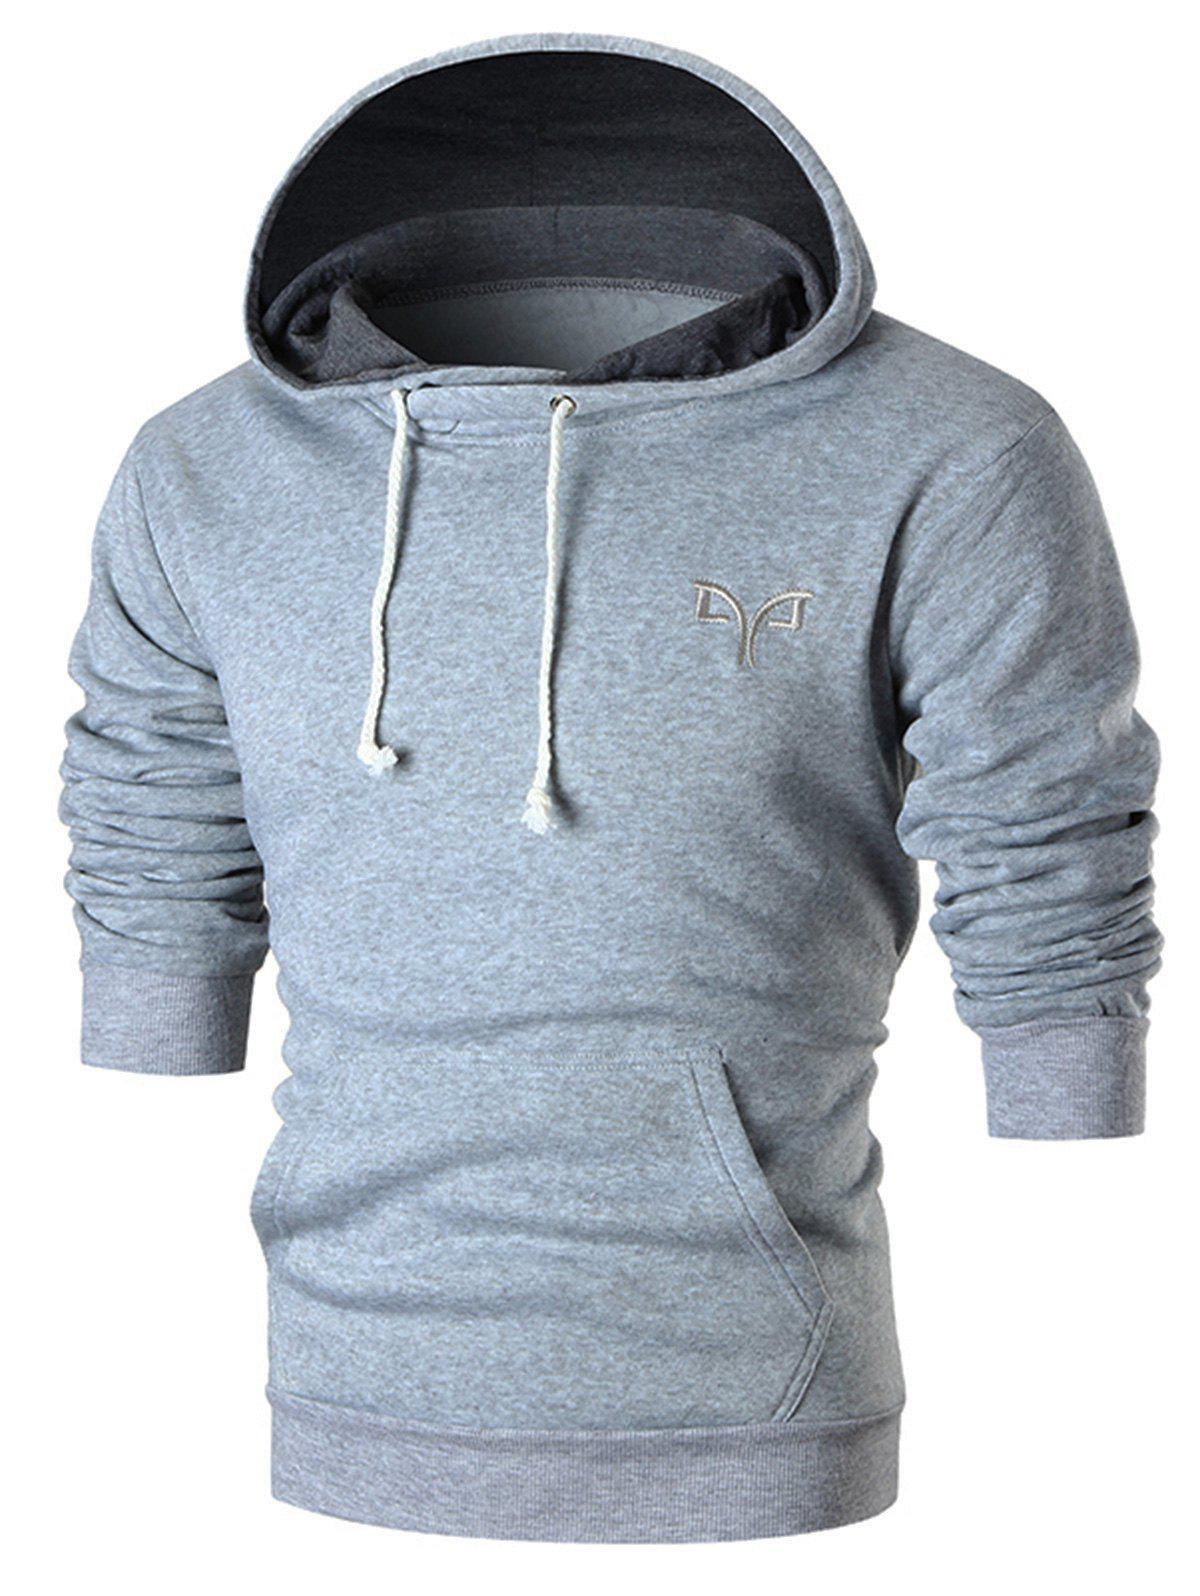 Embroidered Kangaroo Pocket Pullover Hoodie kangaroo pocket star embroidered drawstring pullover hoodie page 8